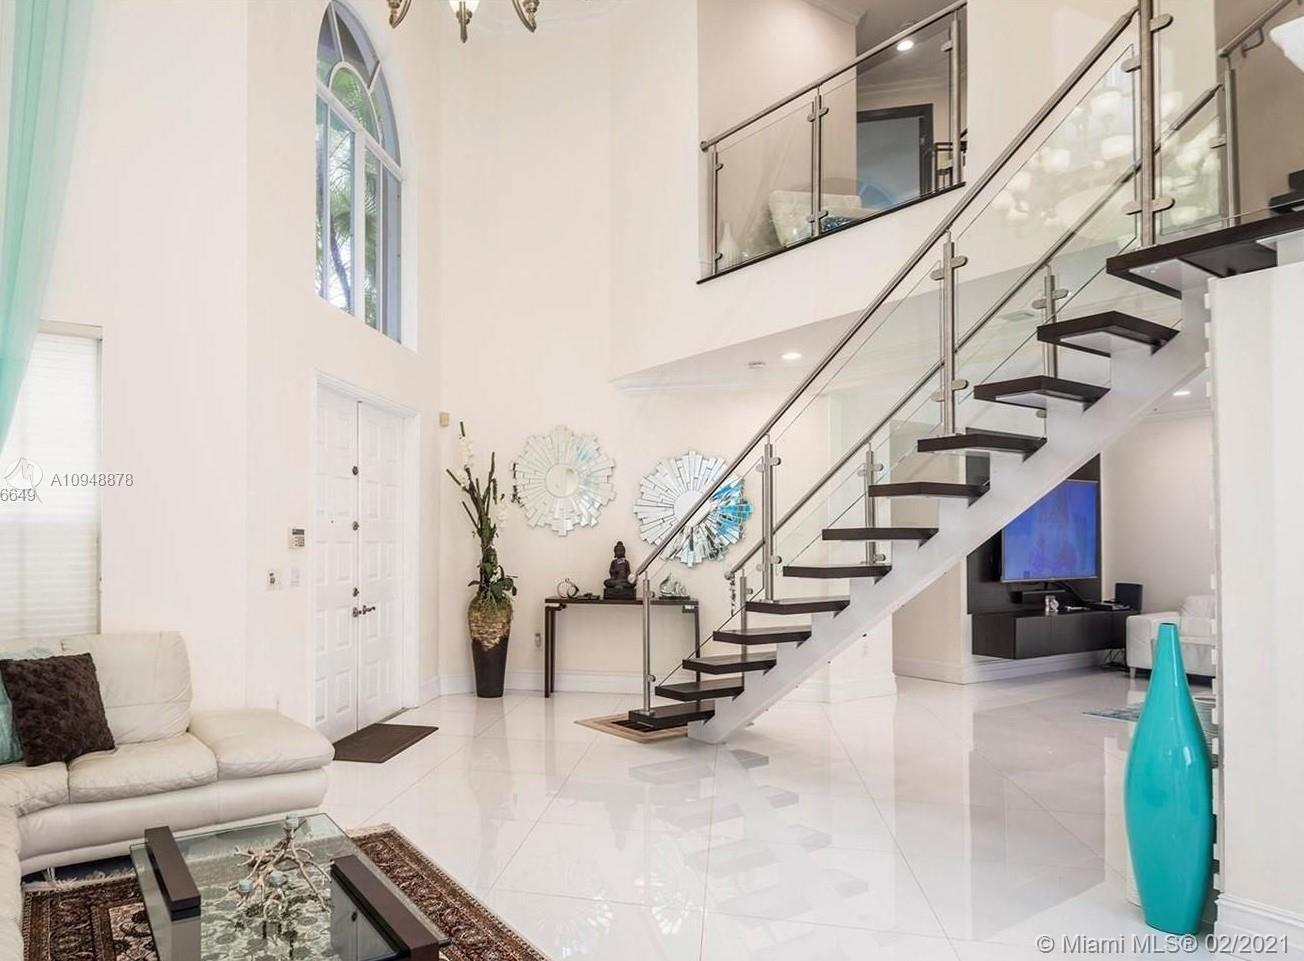 Details for 19474 39th Ave, Sunny Isles Beach, FL 33160